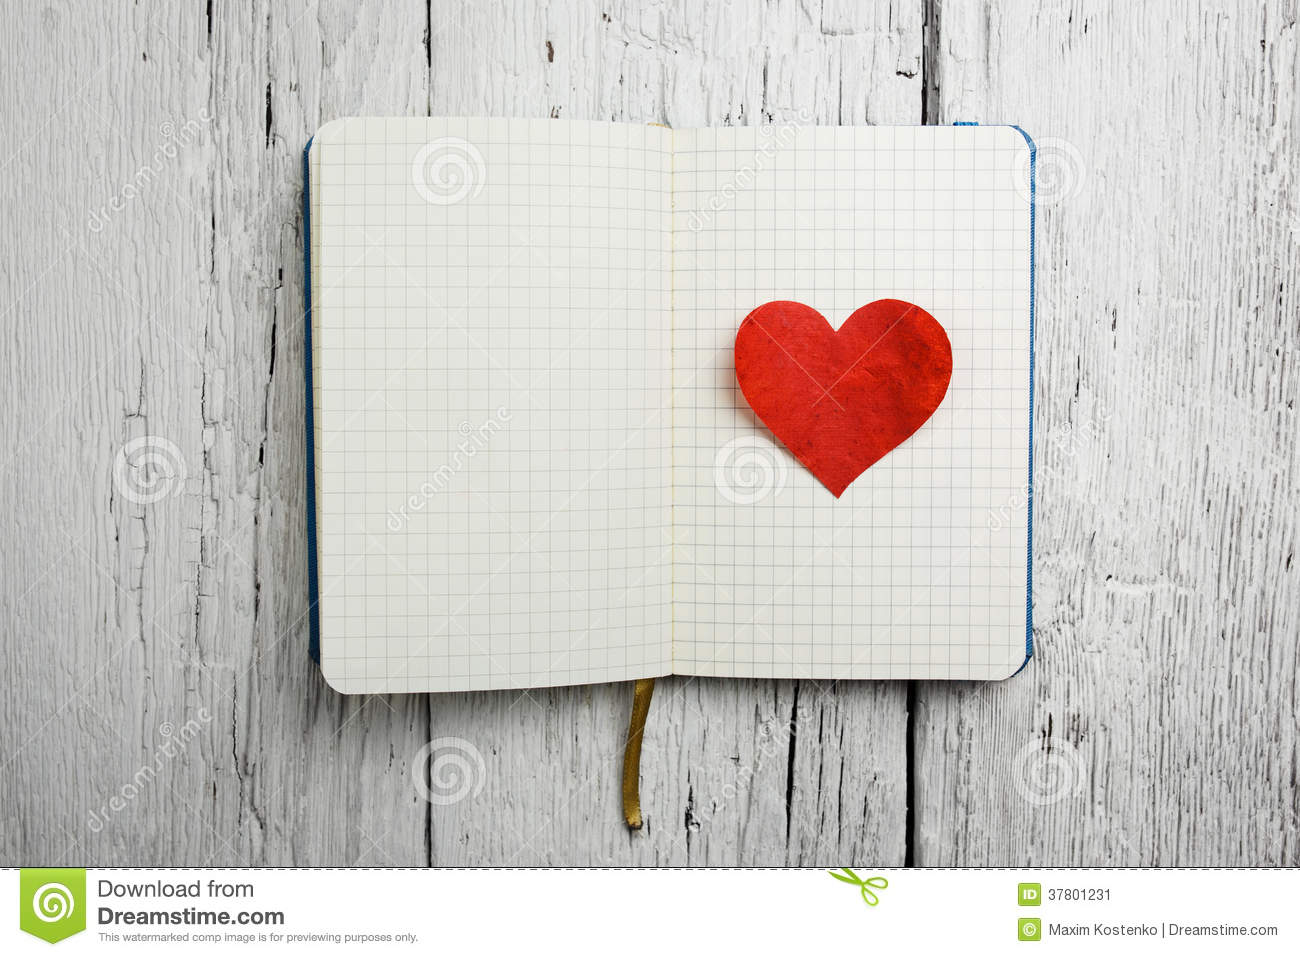 Blank Notepad With Red Heart On Wood Stock Image - Image ...